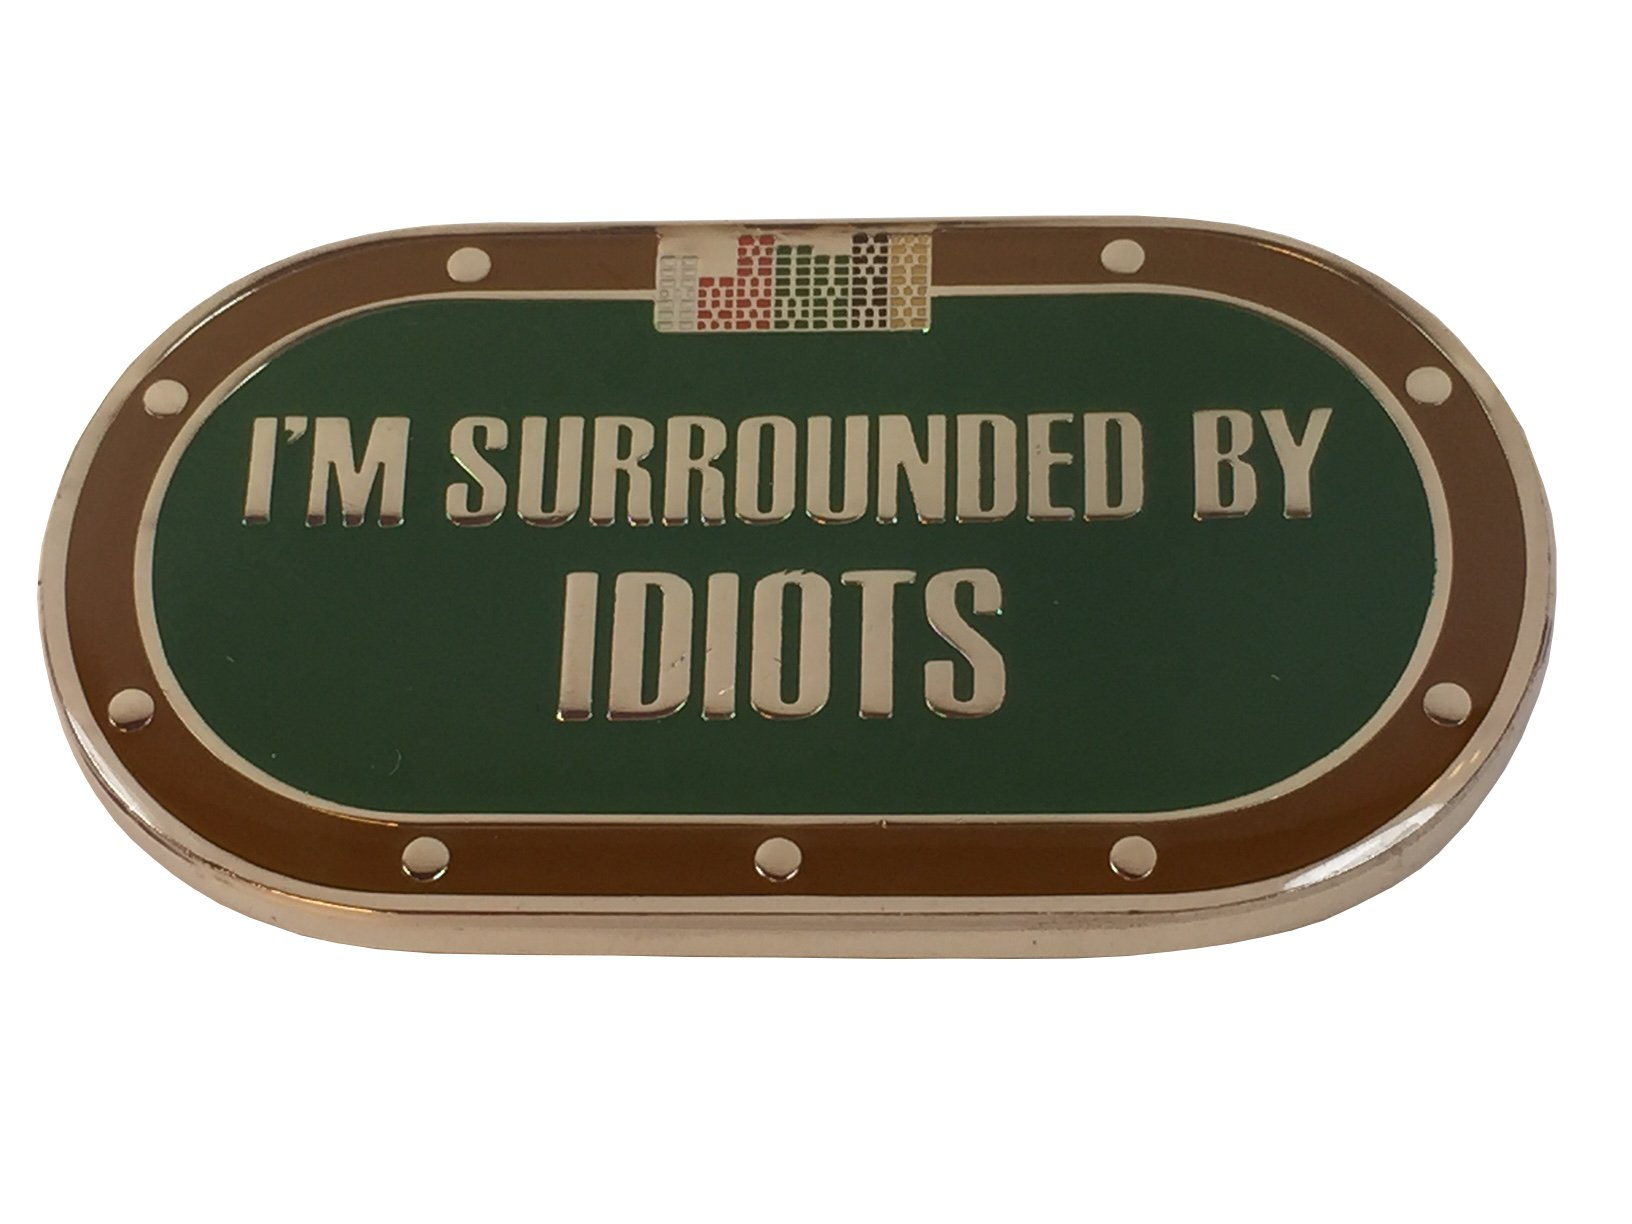 I'm Surrounded By Idiots Poker Weight